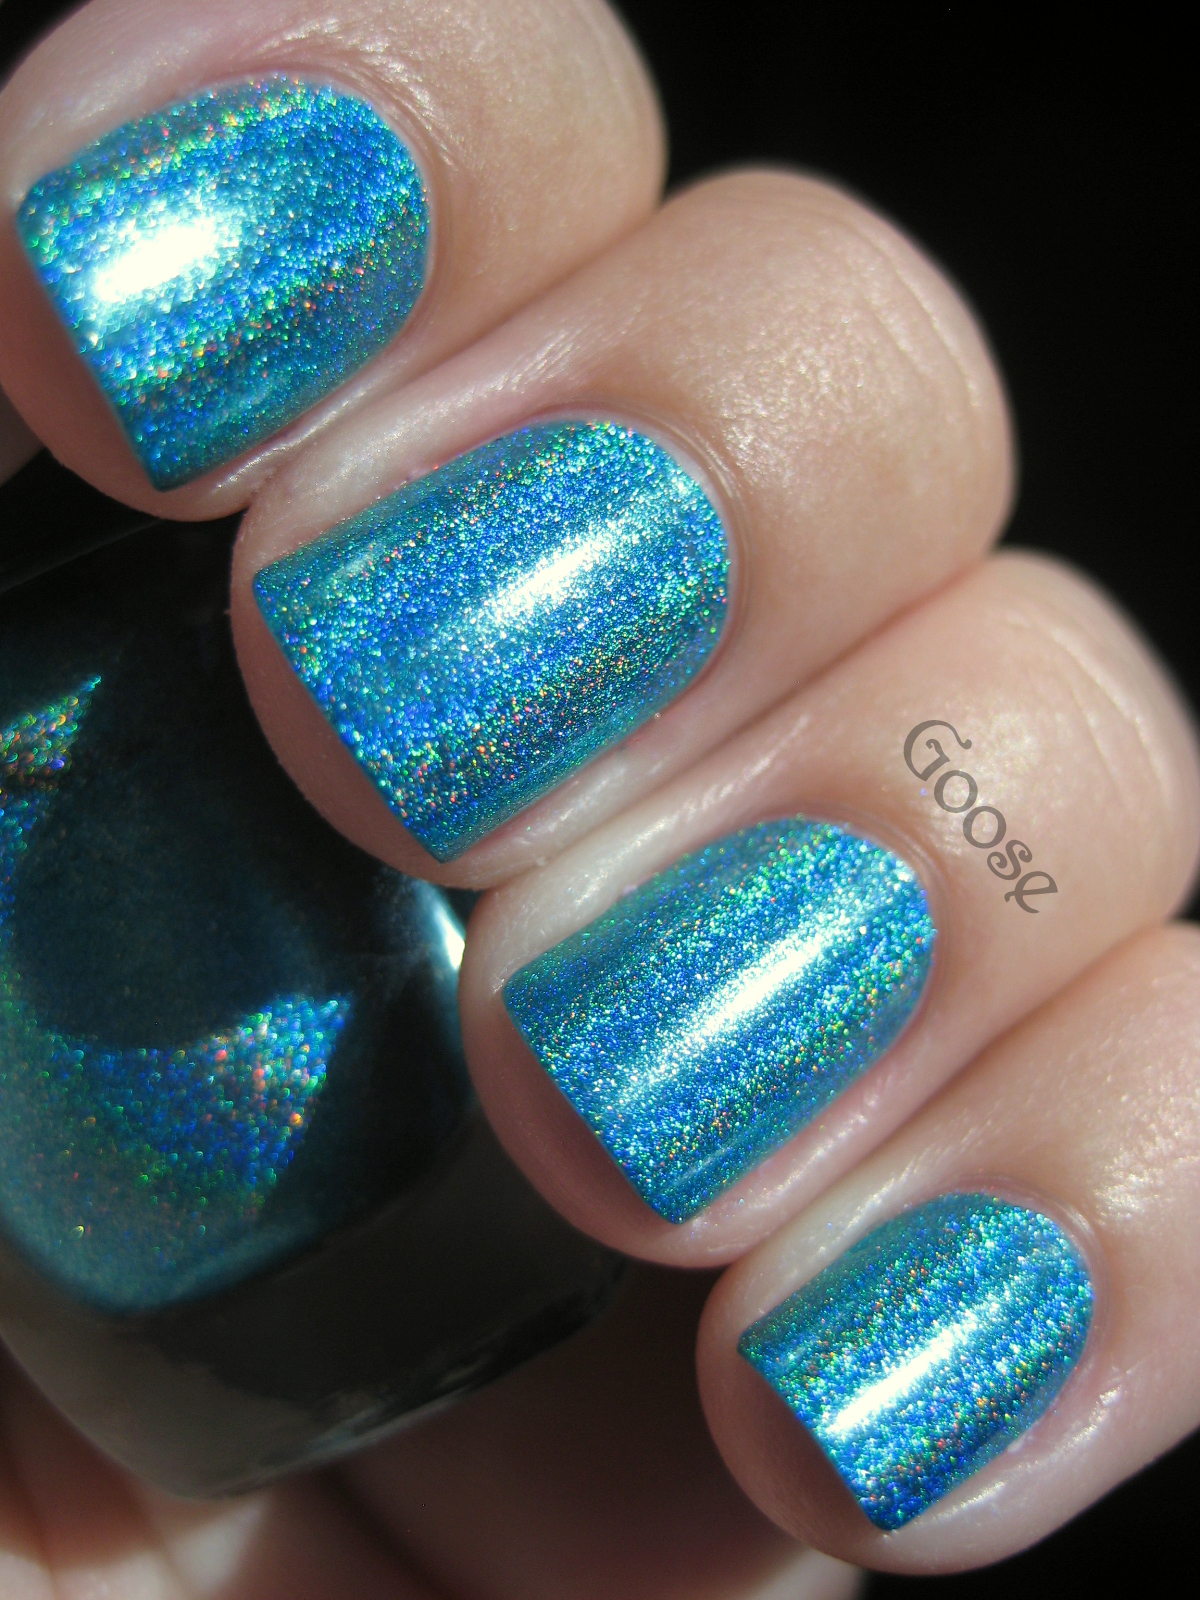 Goose\'s Glitter: Cupcake Polish American Beauty Collection Swatches ...